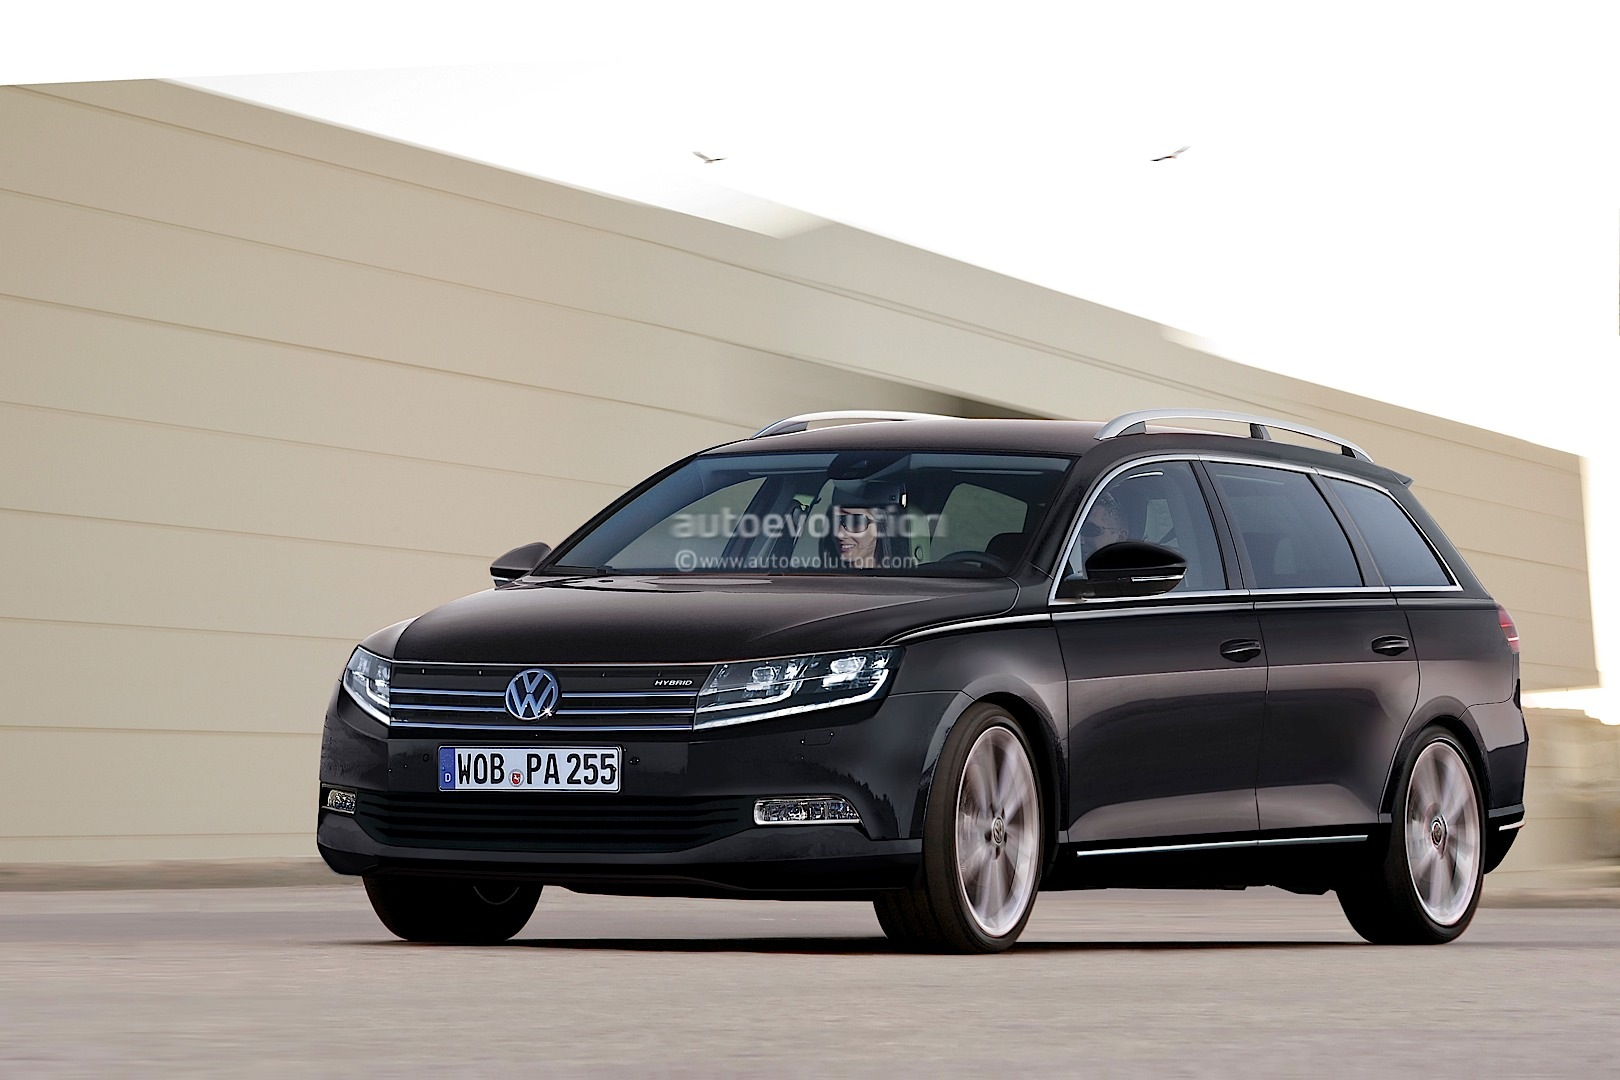 2015 b8 volkswangen passat variant envisioned autoevolution. Black Bedroom Furniture Sets. Home Design Ideas